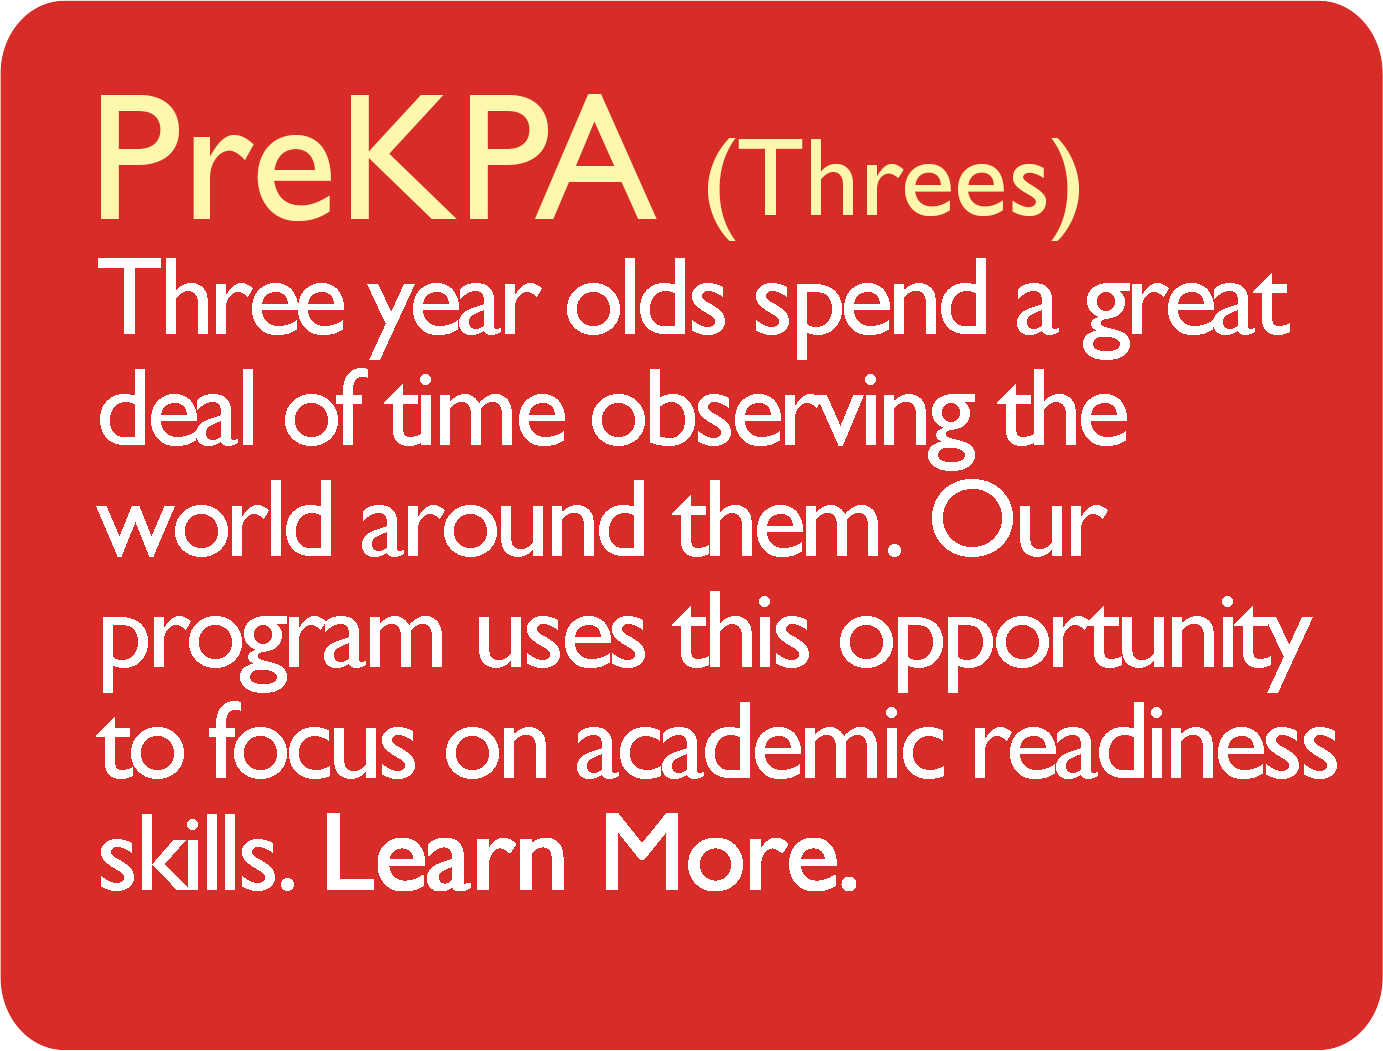 PreKPA (Threes) Three year olds spend a great deal of time observing the world around them. Our program uses this opportunity to focus on academic readiness skills. Learn More.